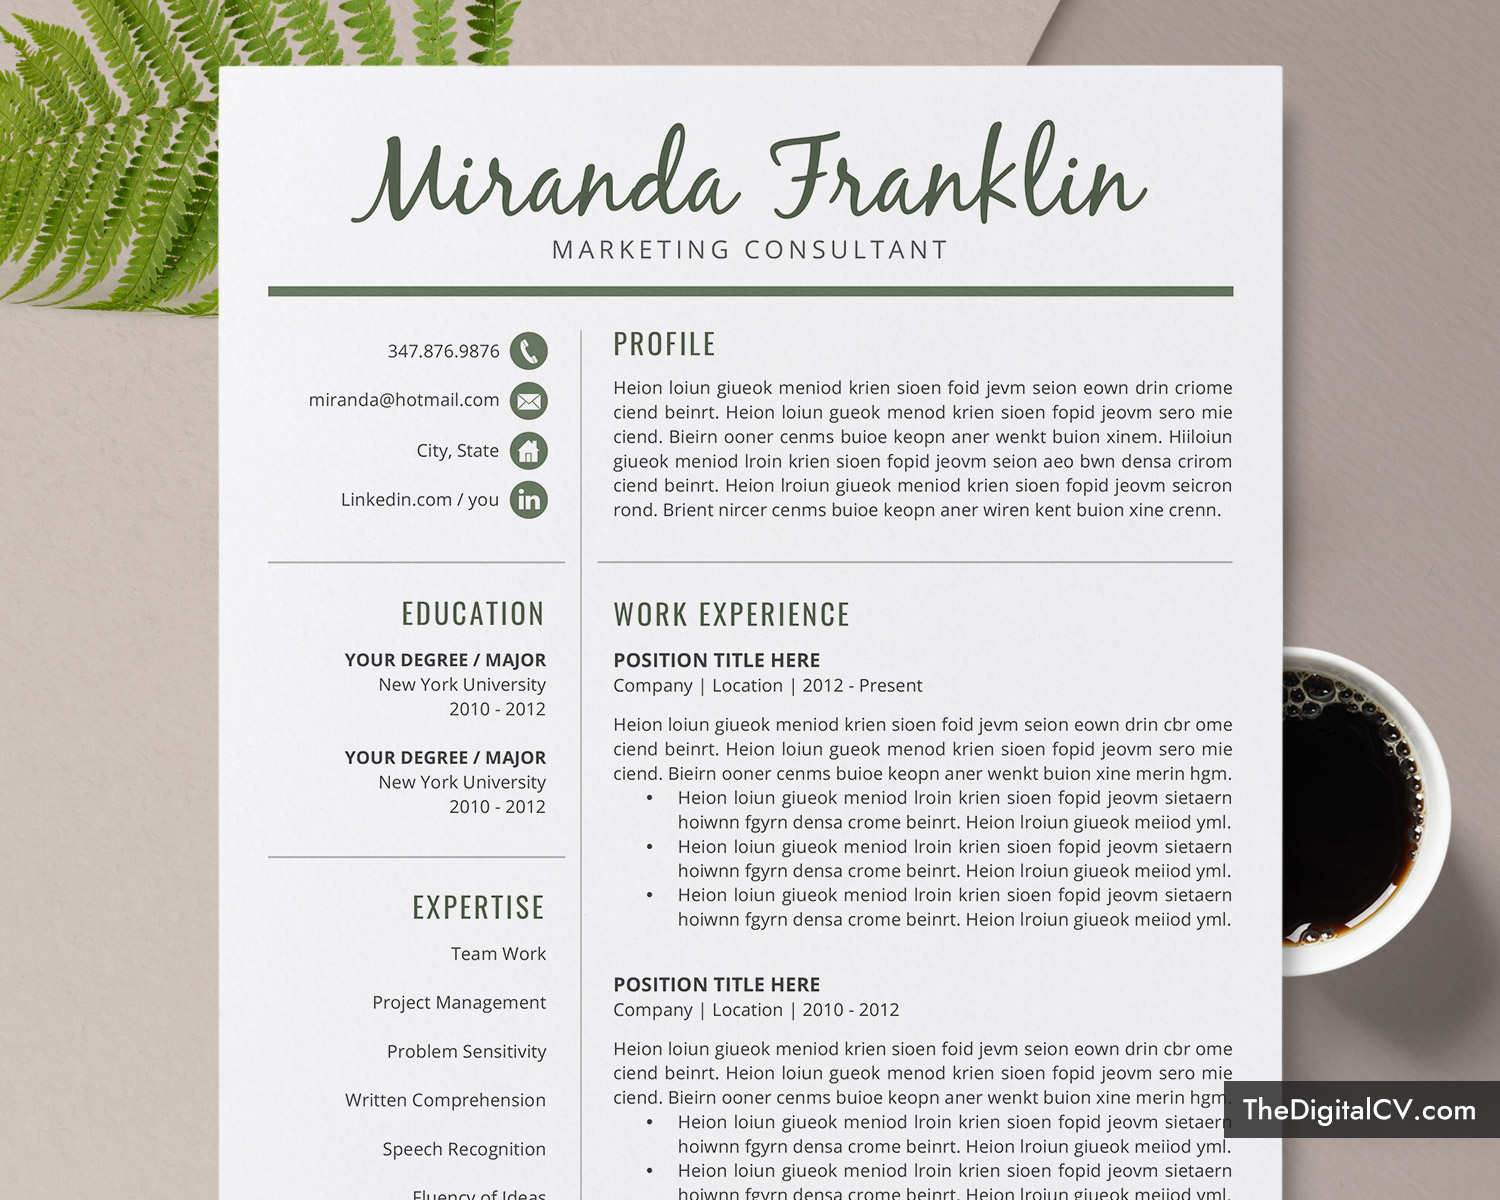 Simple And Basic Resume Template 2019 2020 Cv Template Cover Letter Microsoft Word Resume Template 1 3 Page Modern Resume Creative Resume